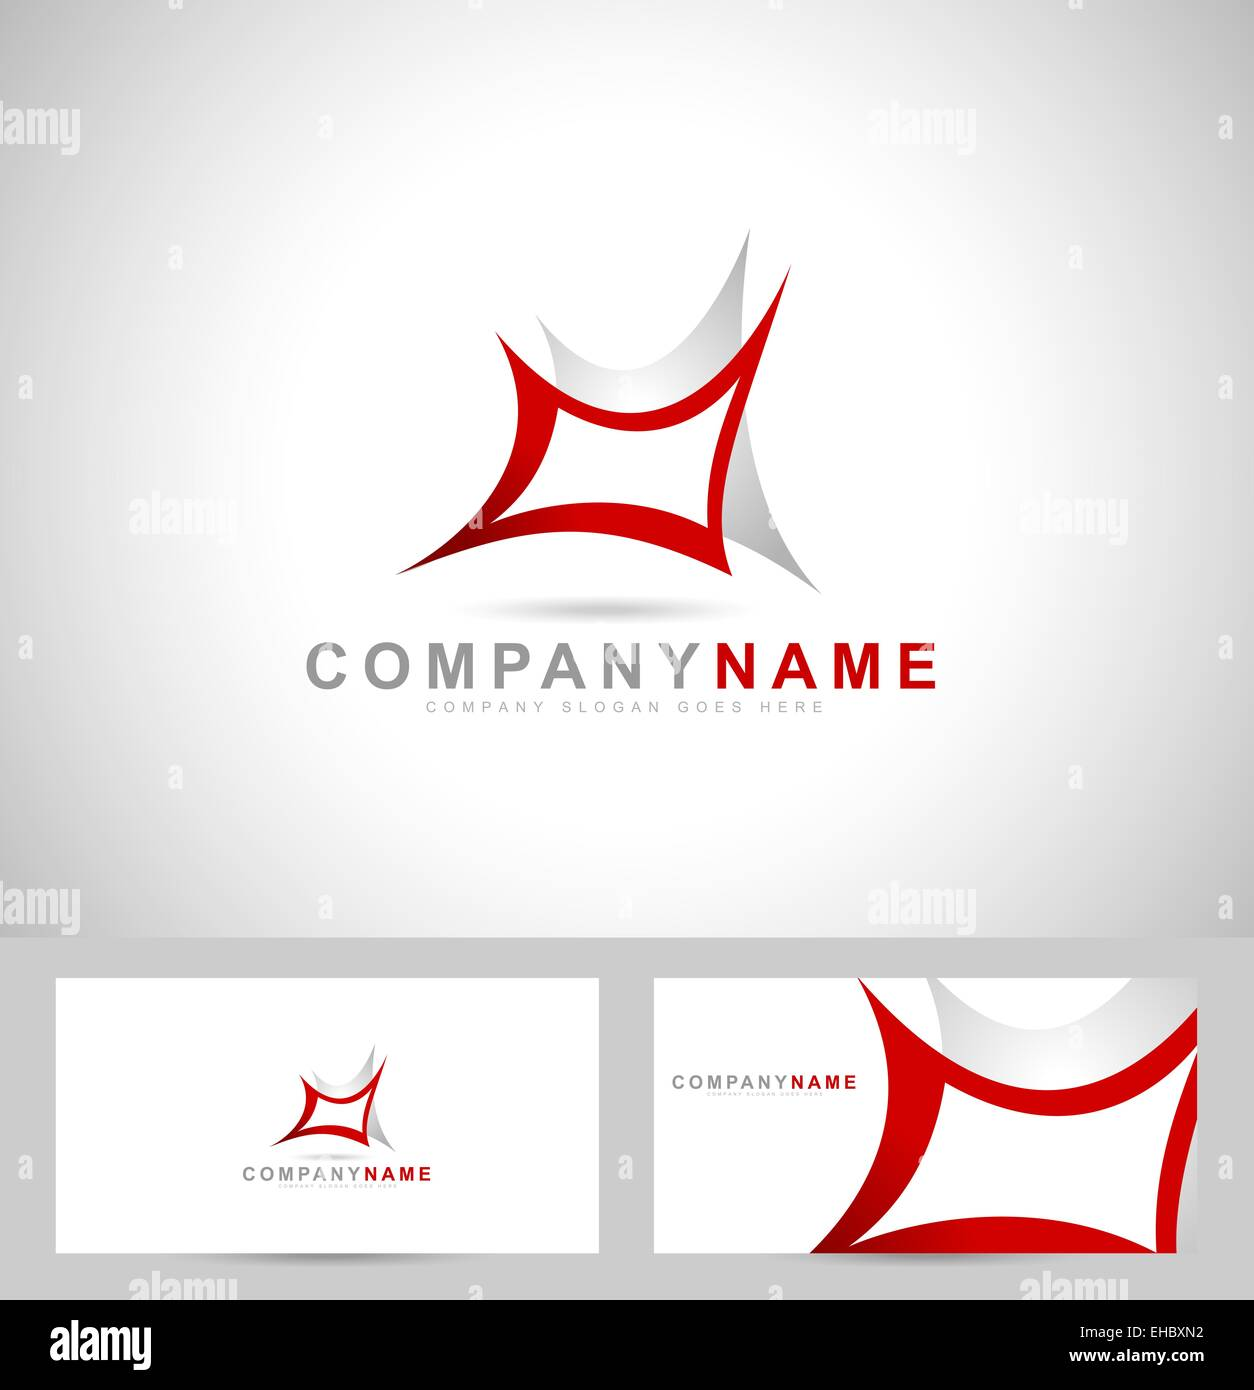 Abstract creative logo web design company logo and business card web design company logo and business card template reheart Gallery